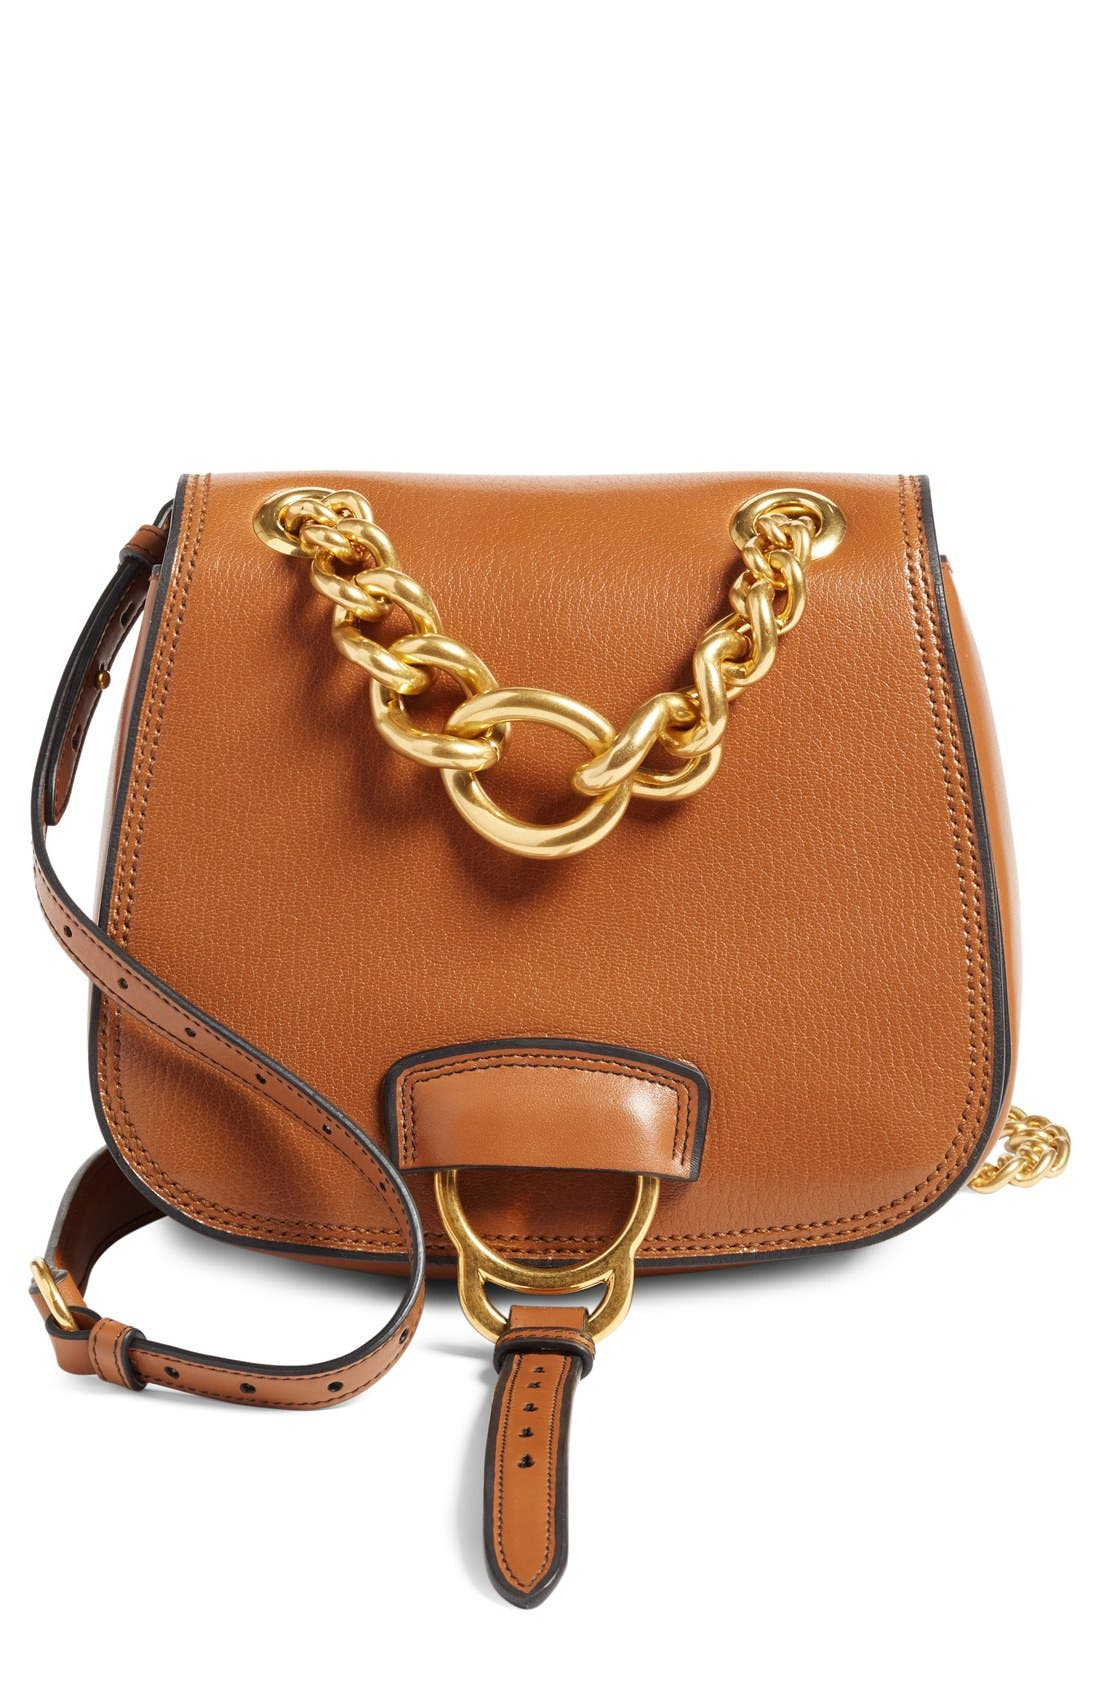 'Dahlia' Goatskin Leather Saddle Bag,                             Main thumbnail 2, color,